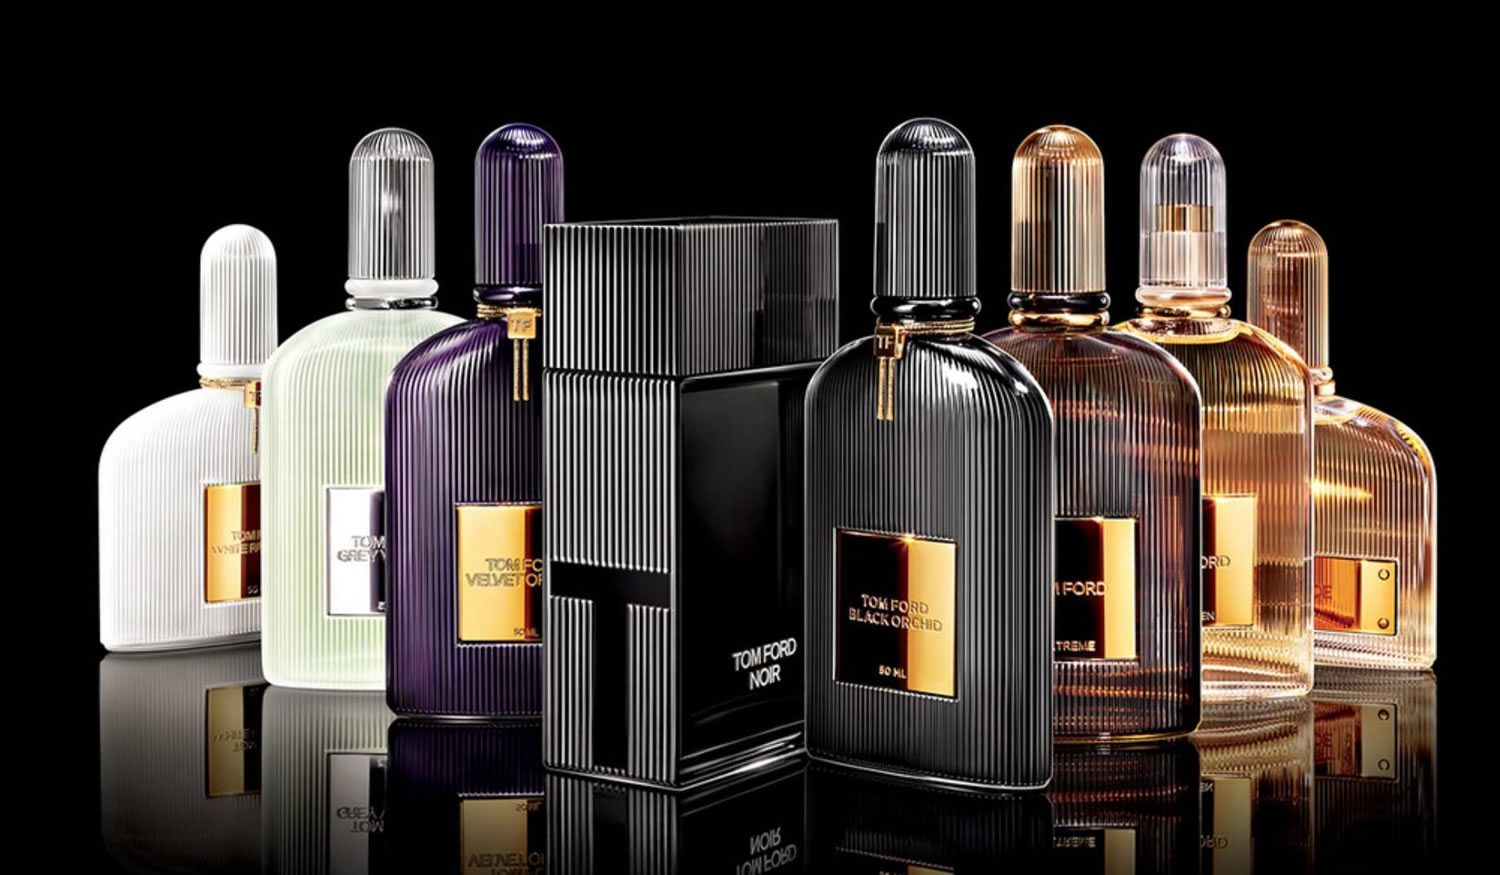 Tom Ford Colognes: A Guide To The Designer's Most Iconic Scents